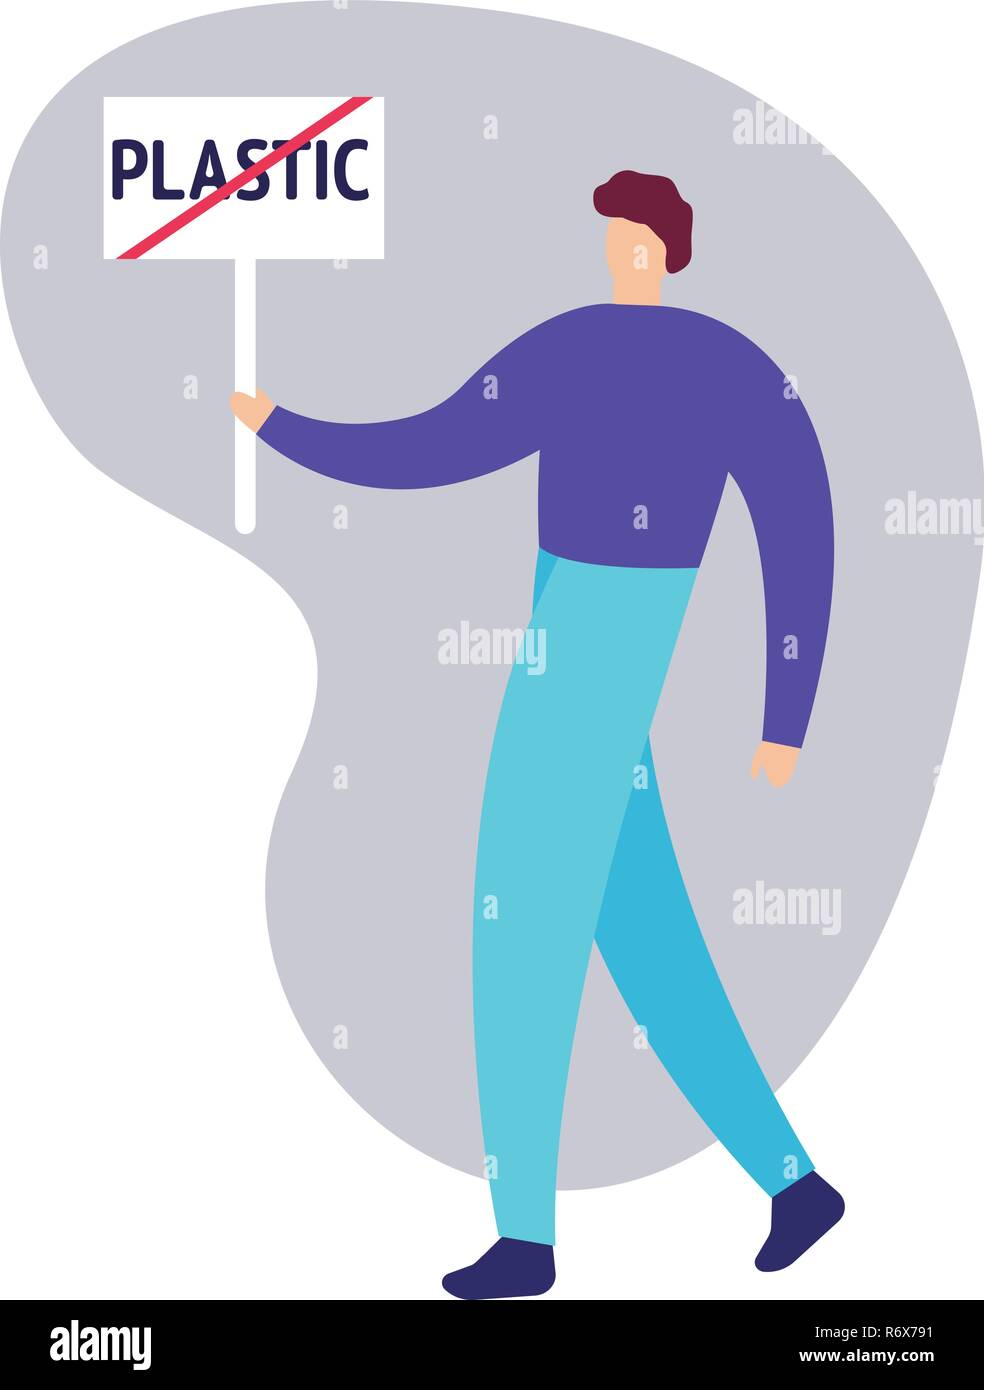 Man protest hand banner icon. Simple illustration of man protest hand banner vector Stock Vector